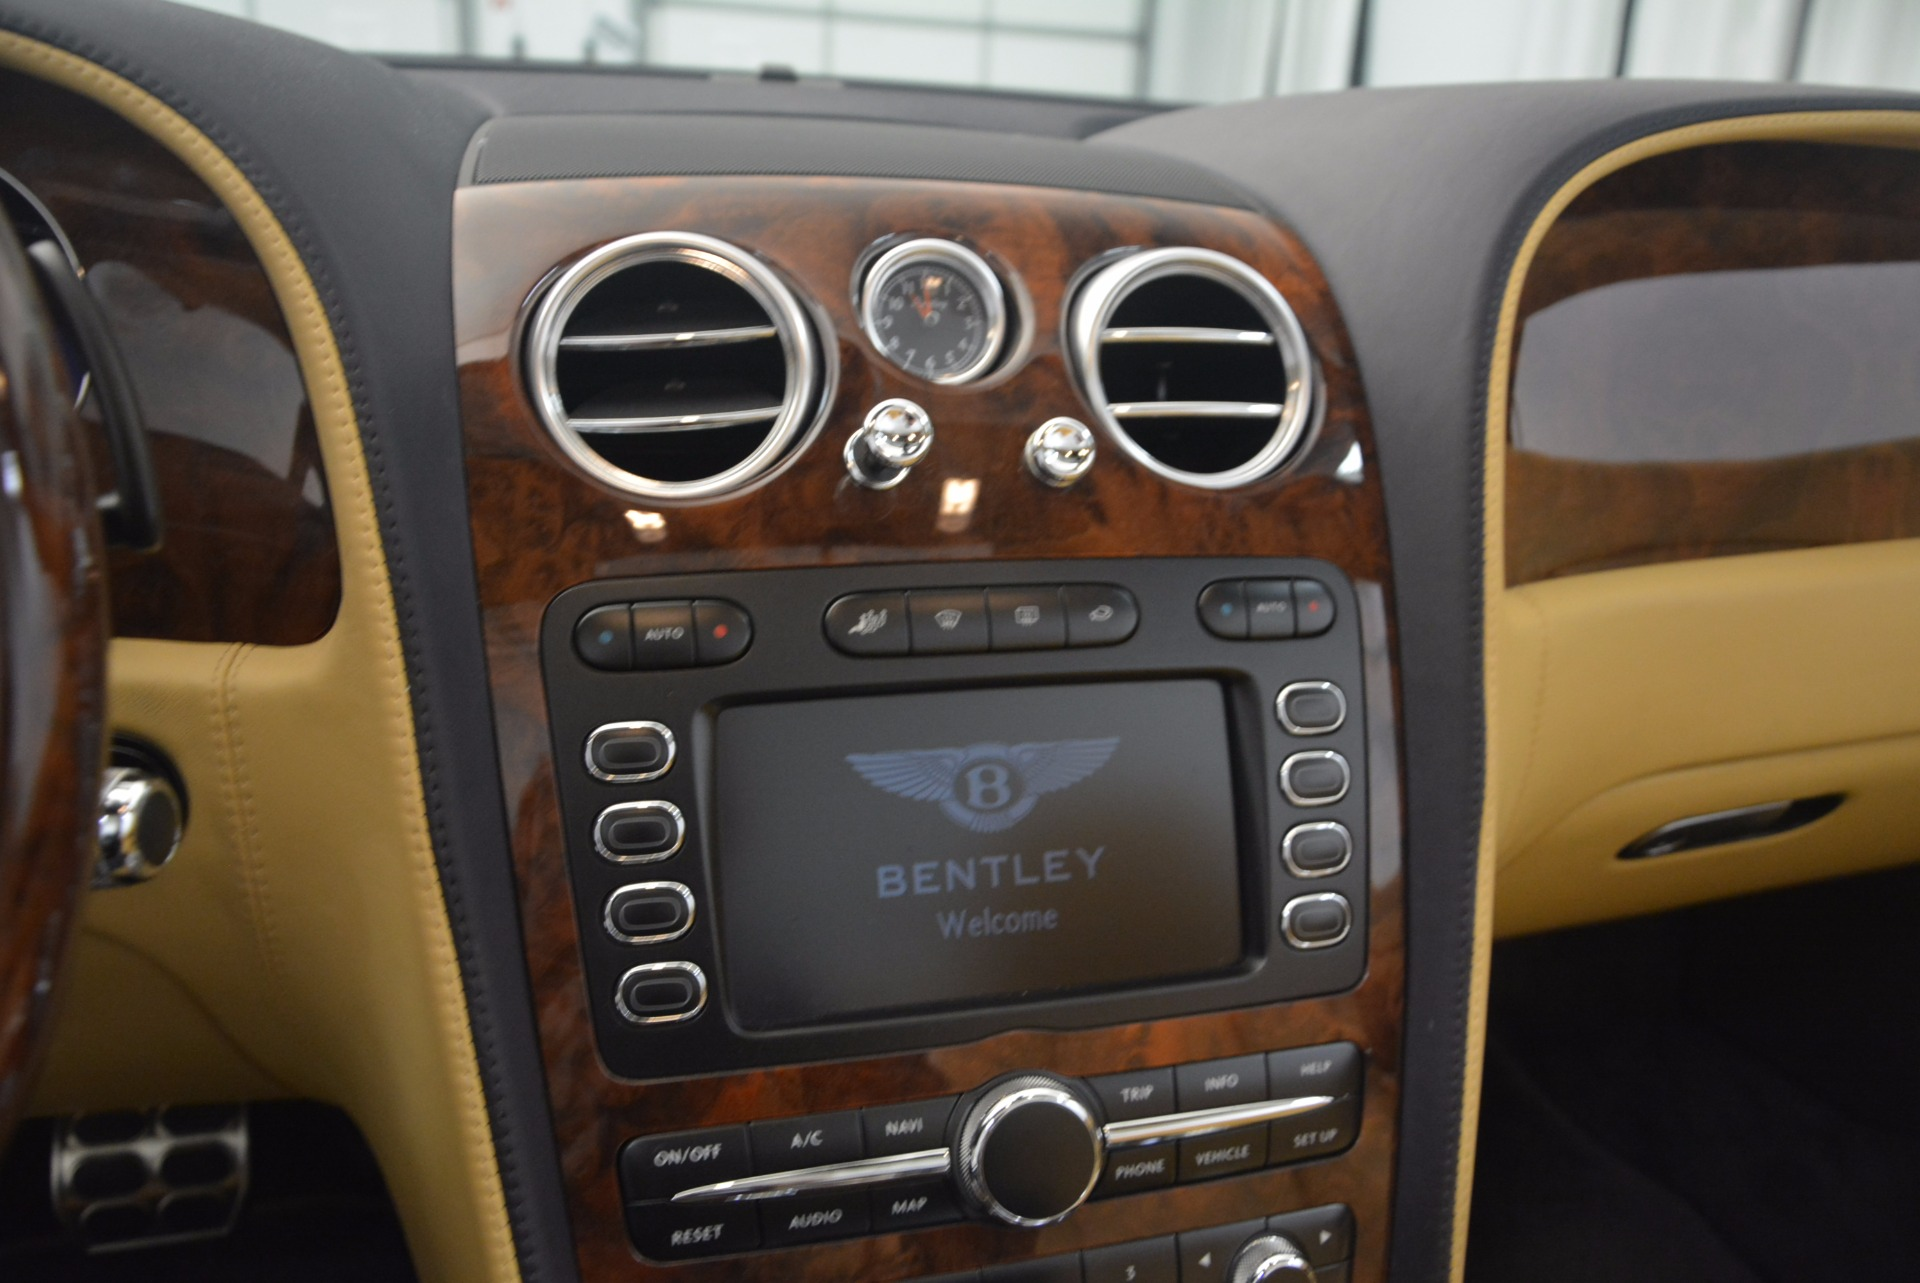 Used 2007 Bentley Continental GTC  For Sale In Westport, CT 1186_p42